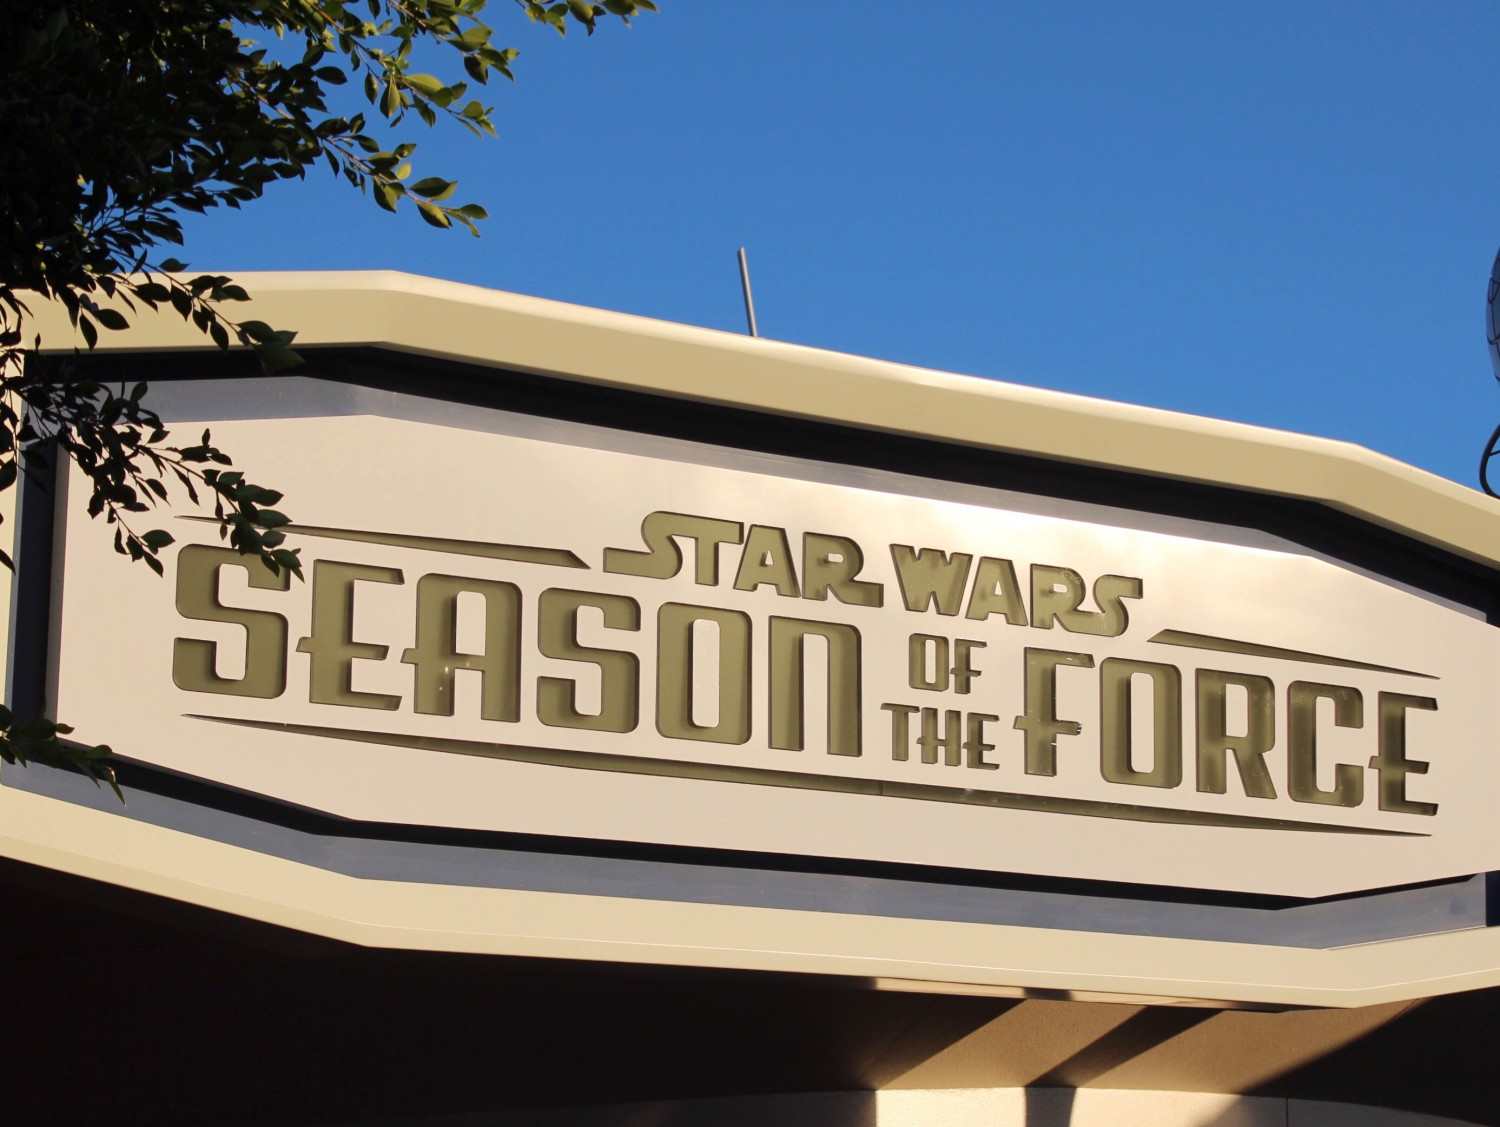 Disneyland Star Wars Season of The Force